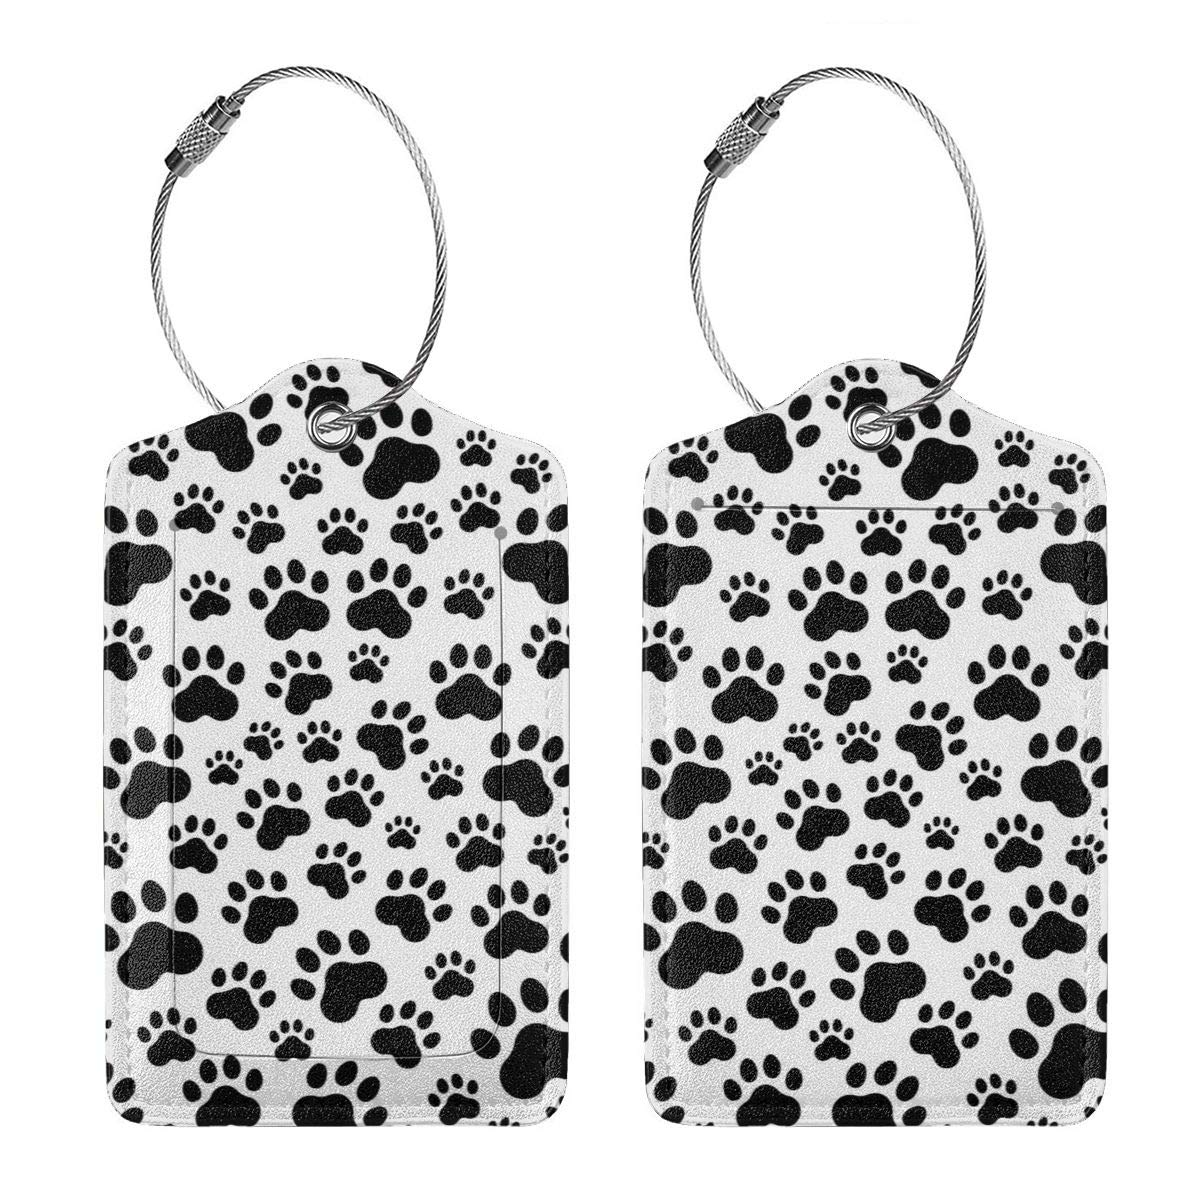 GoldK Dog Paw Print Leather Luggage Tags Baggage Bag Instrument Tag Travel Labels Accessories with Privacy Cover